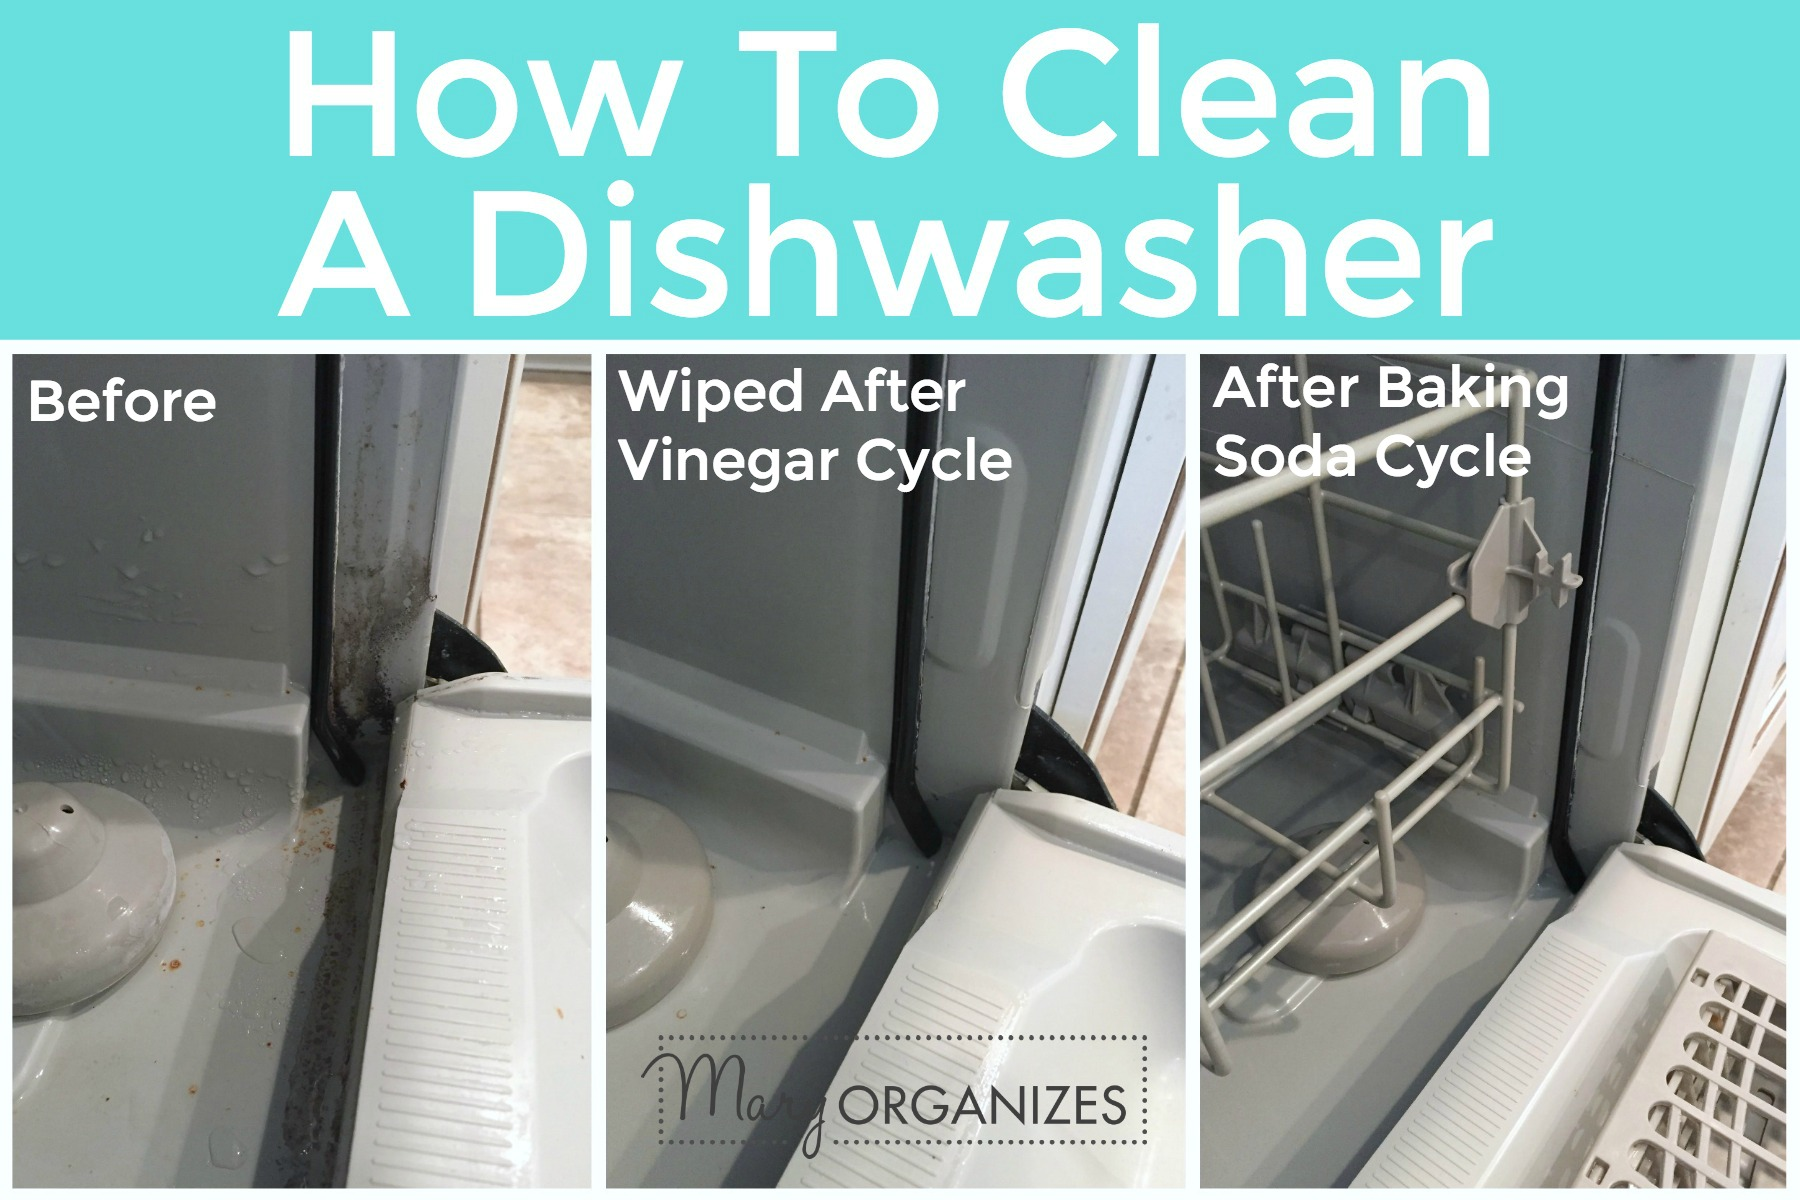 How To Clean A Dishwasher - Comparing corner after different steps -h